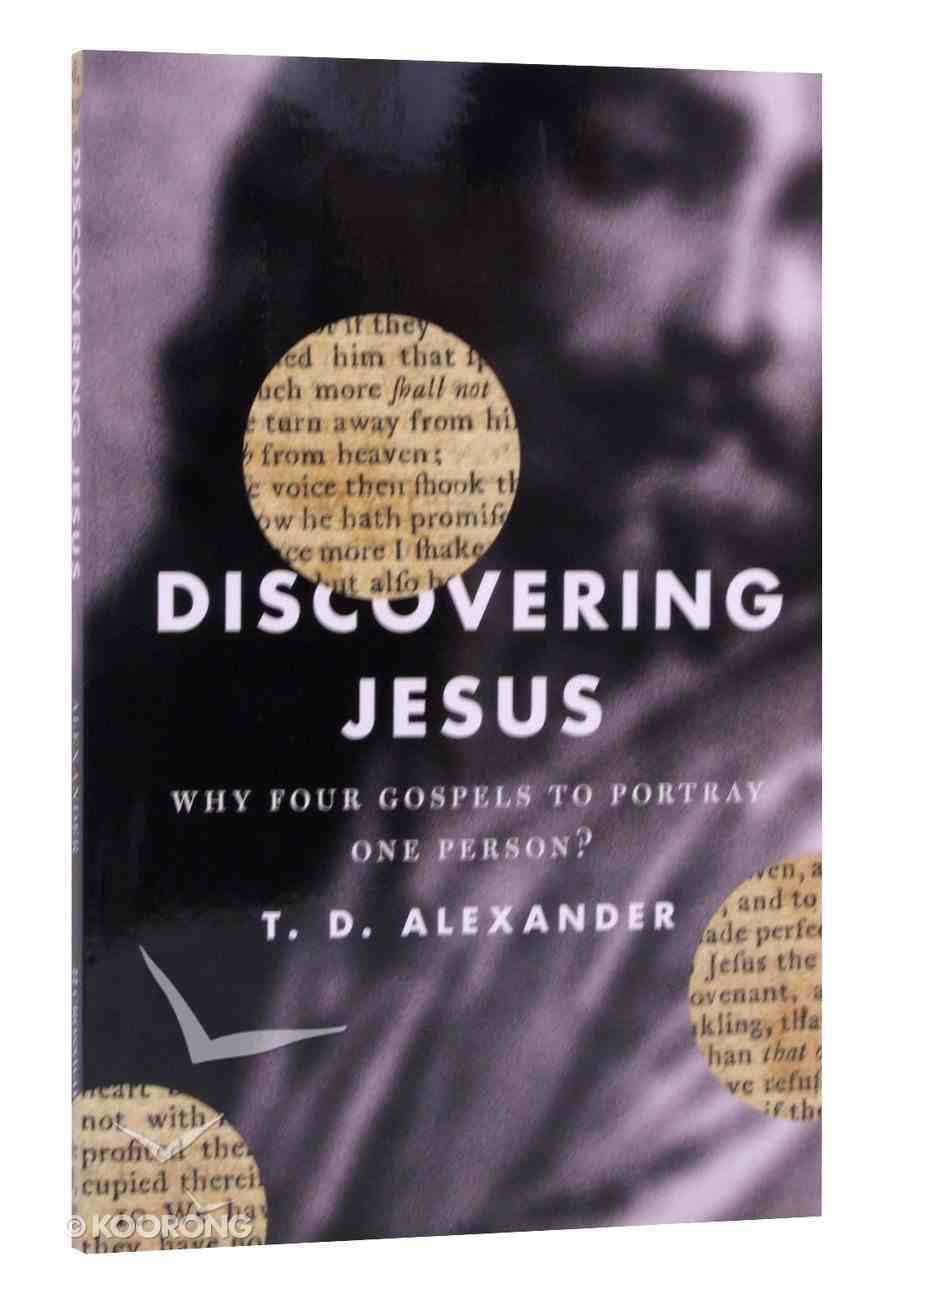 Discovering Jesus: Why Four Gospels to Portray One Person? Paperback